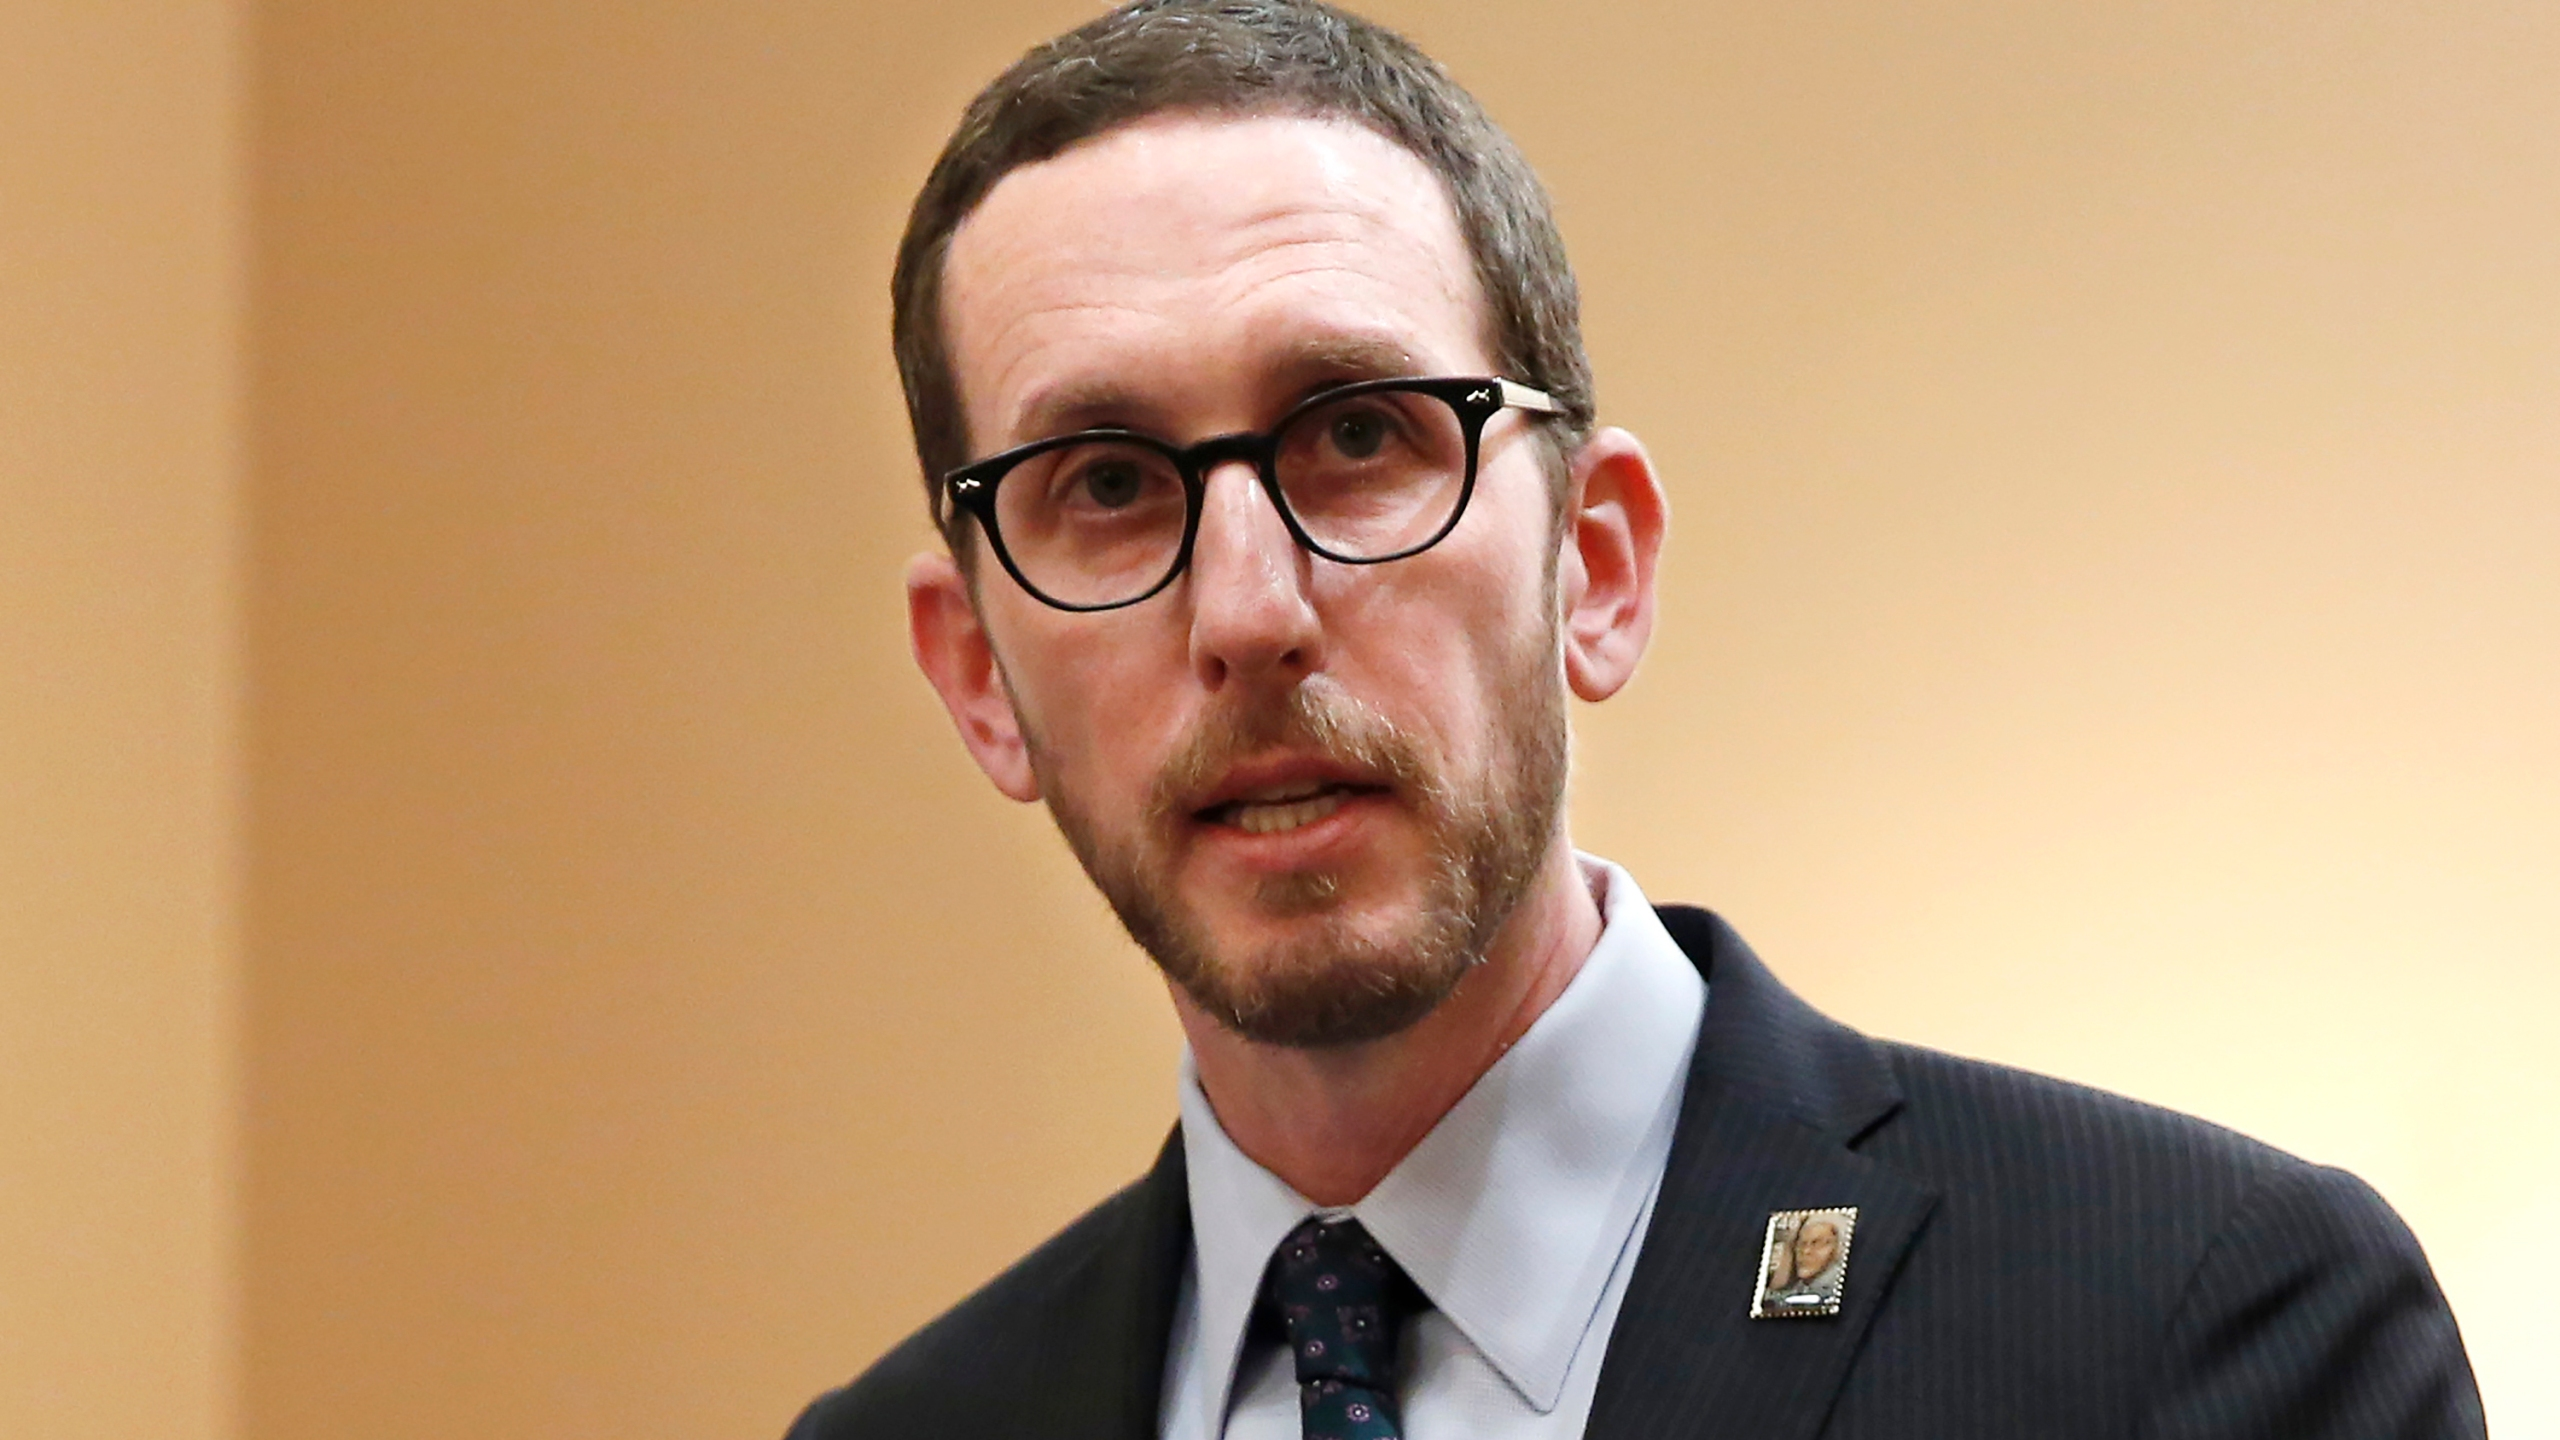 In this Jan. 21, 2020, file photo, state Sen. Scott Wiener, D-San Francisco, speaks at a news conference in Sacramento, Calif. (AP Photo/Rich Pedroncelli, File)